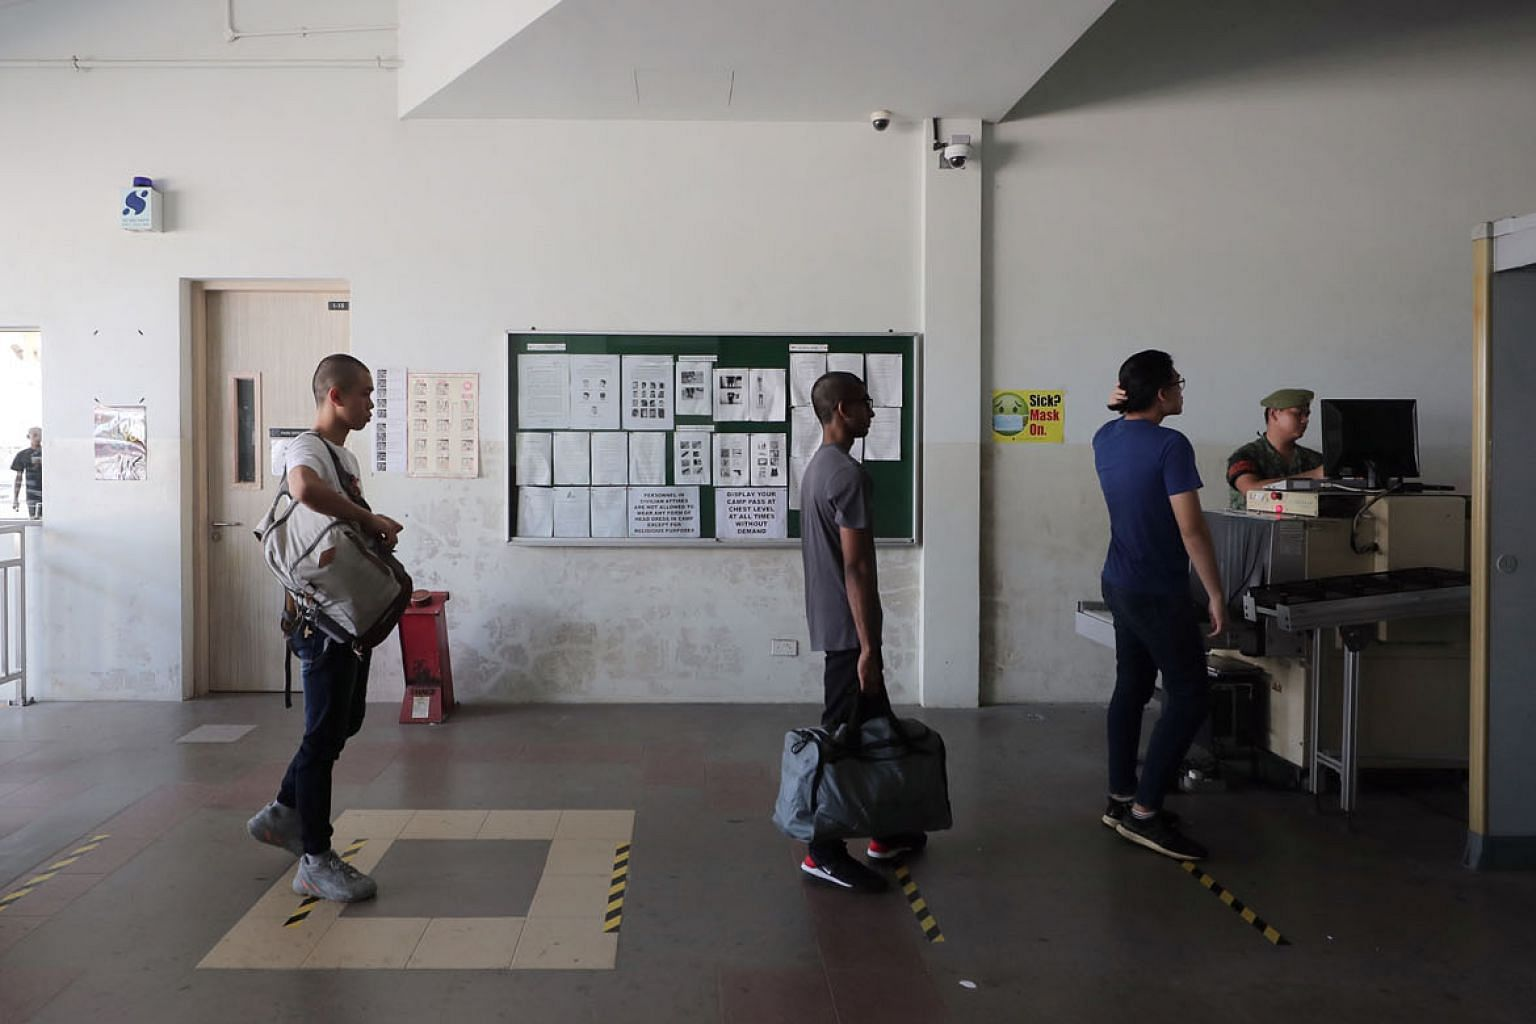 Newly enlisted national servicemen queueing for security checks while practising social distancing at the SAF Ferry Terminal before heading to Pulau Tekong on Wednesday. Defence Minister Ng Eng Hen said yesterday that the SAF has to continue to safeg